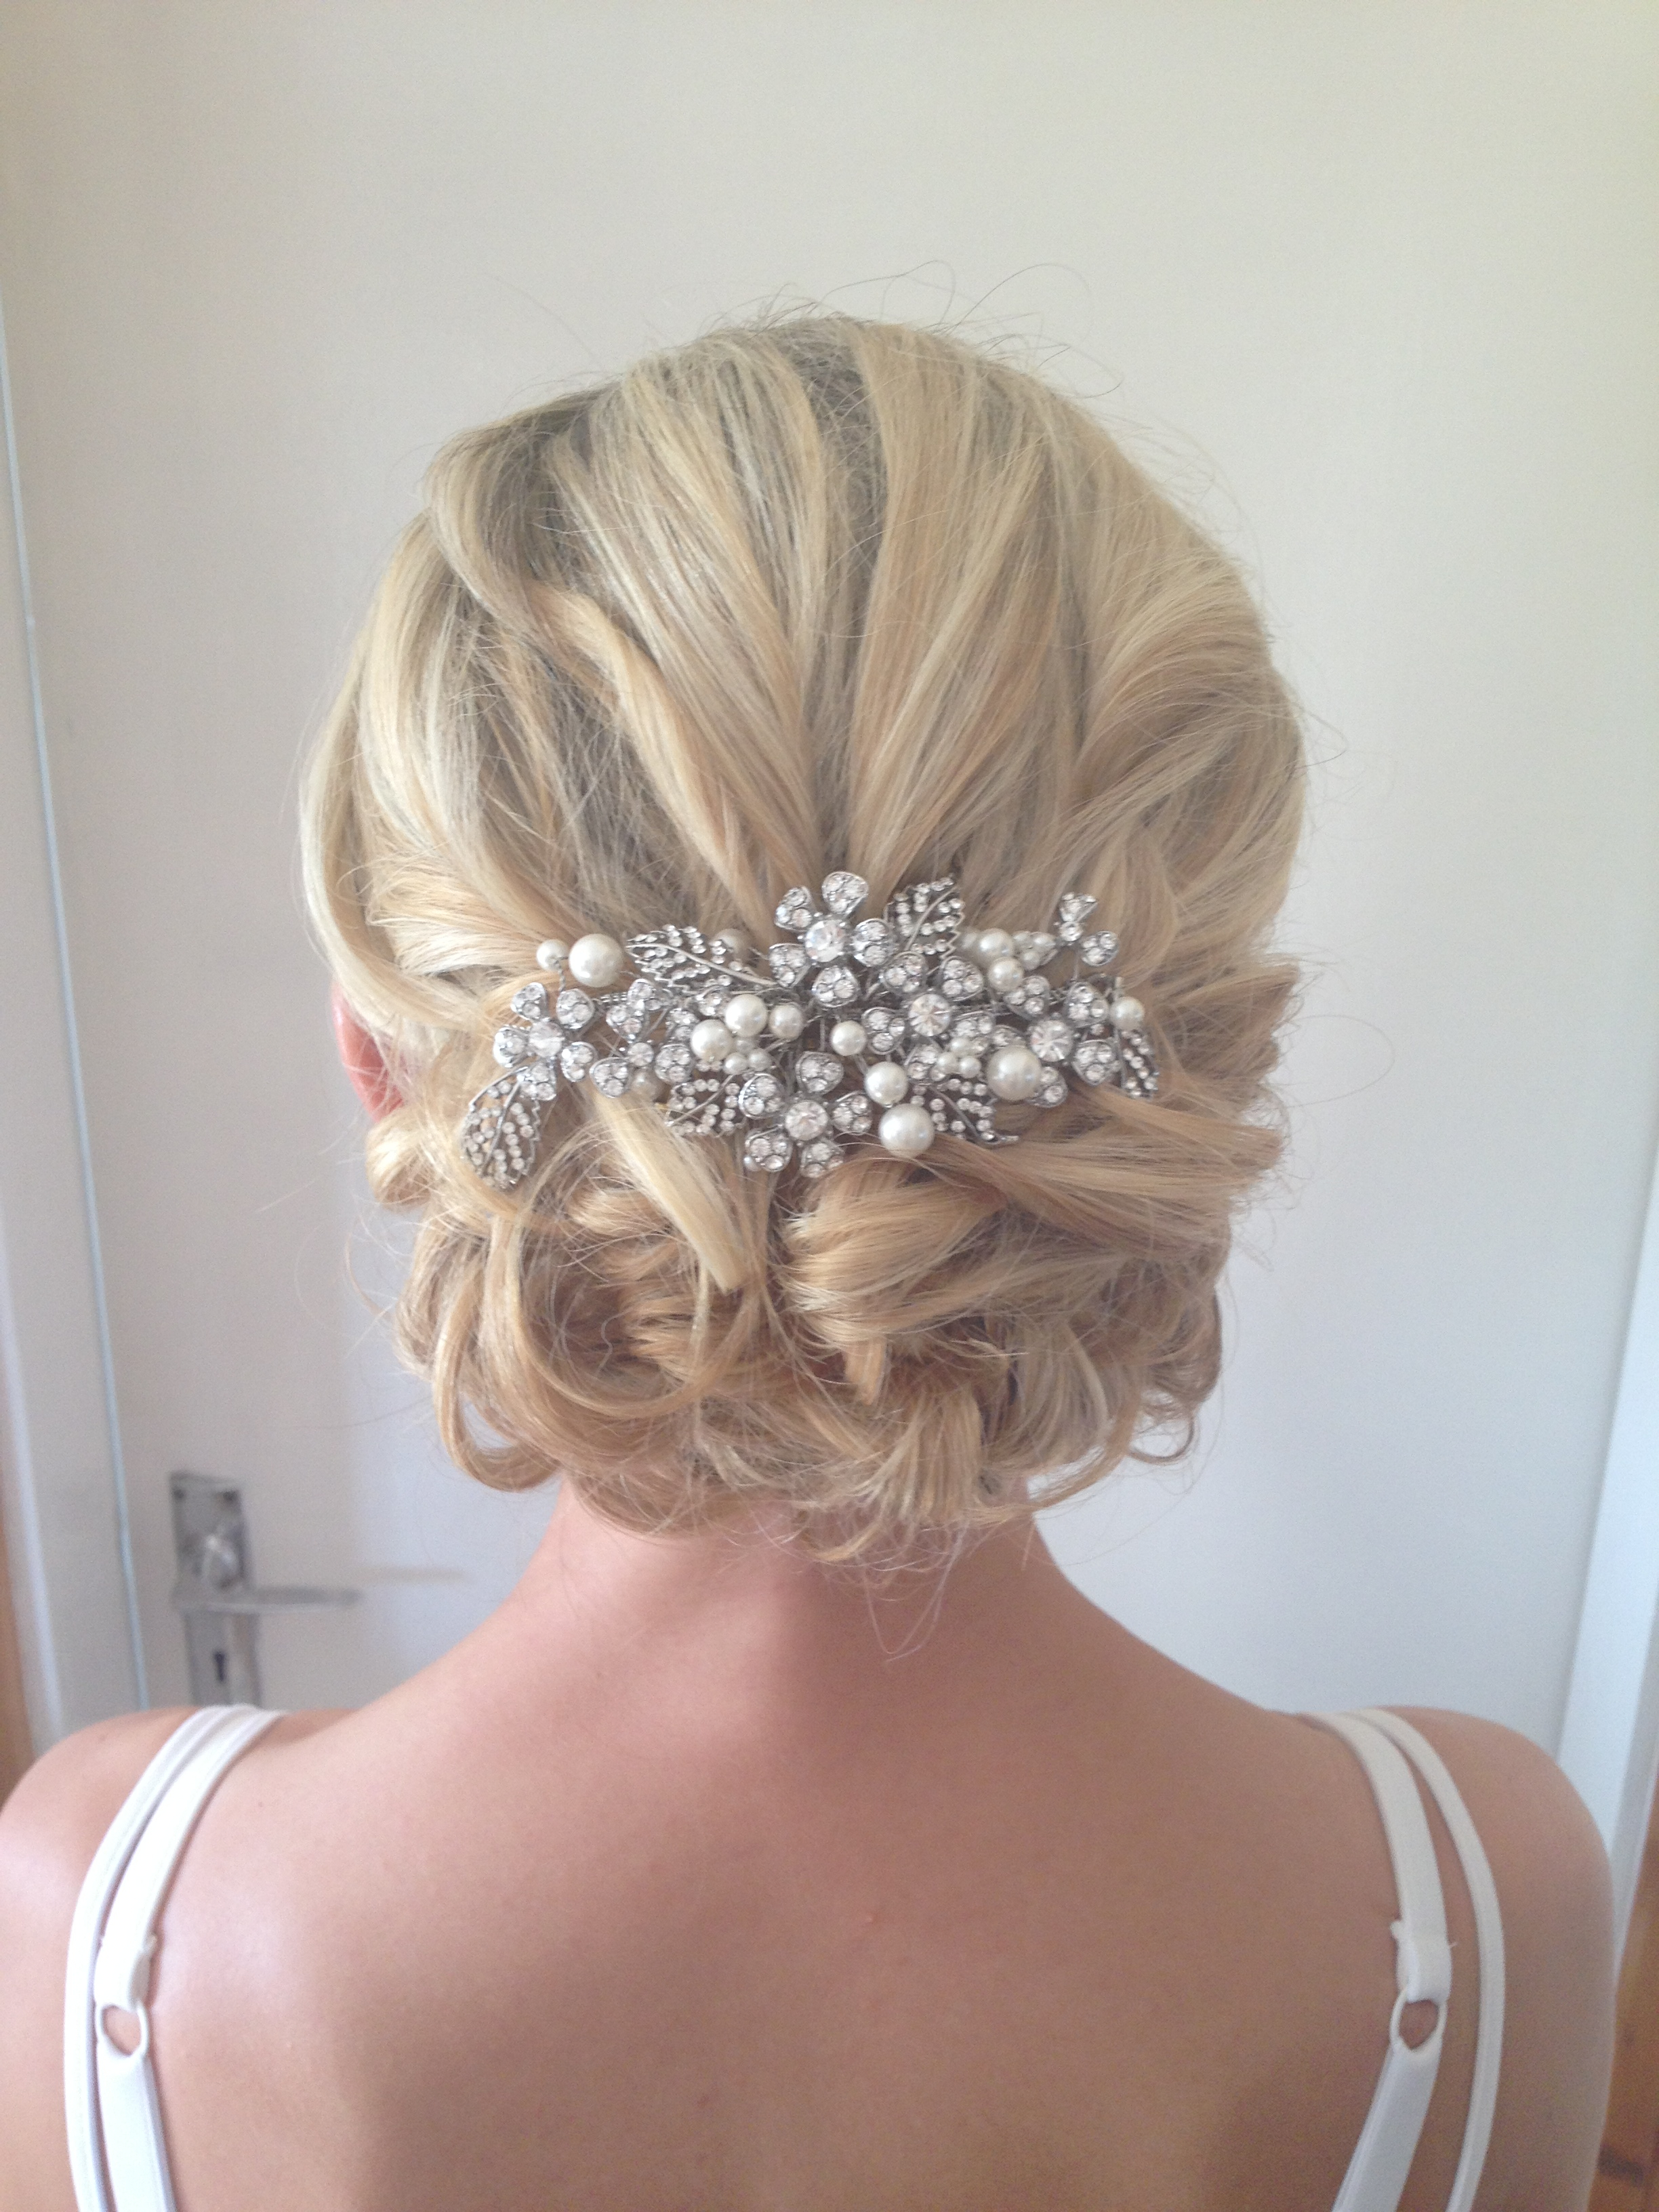 Hairstyles : 2014 Bridal Hair Trend Make Up In 2019 Pinterest Throughout Recent Low Petal Like Bun Prom Hairstyles (Gallery 8 of 20)